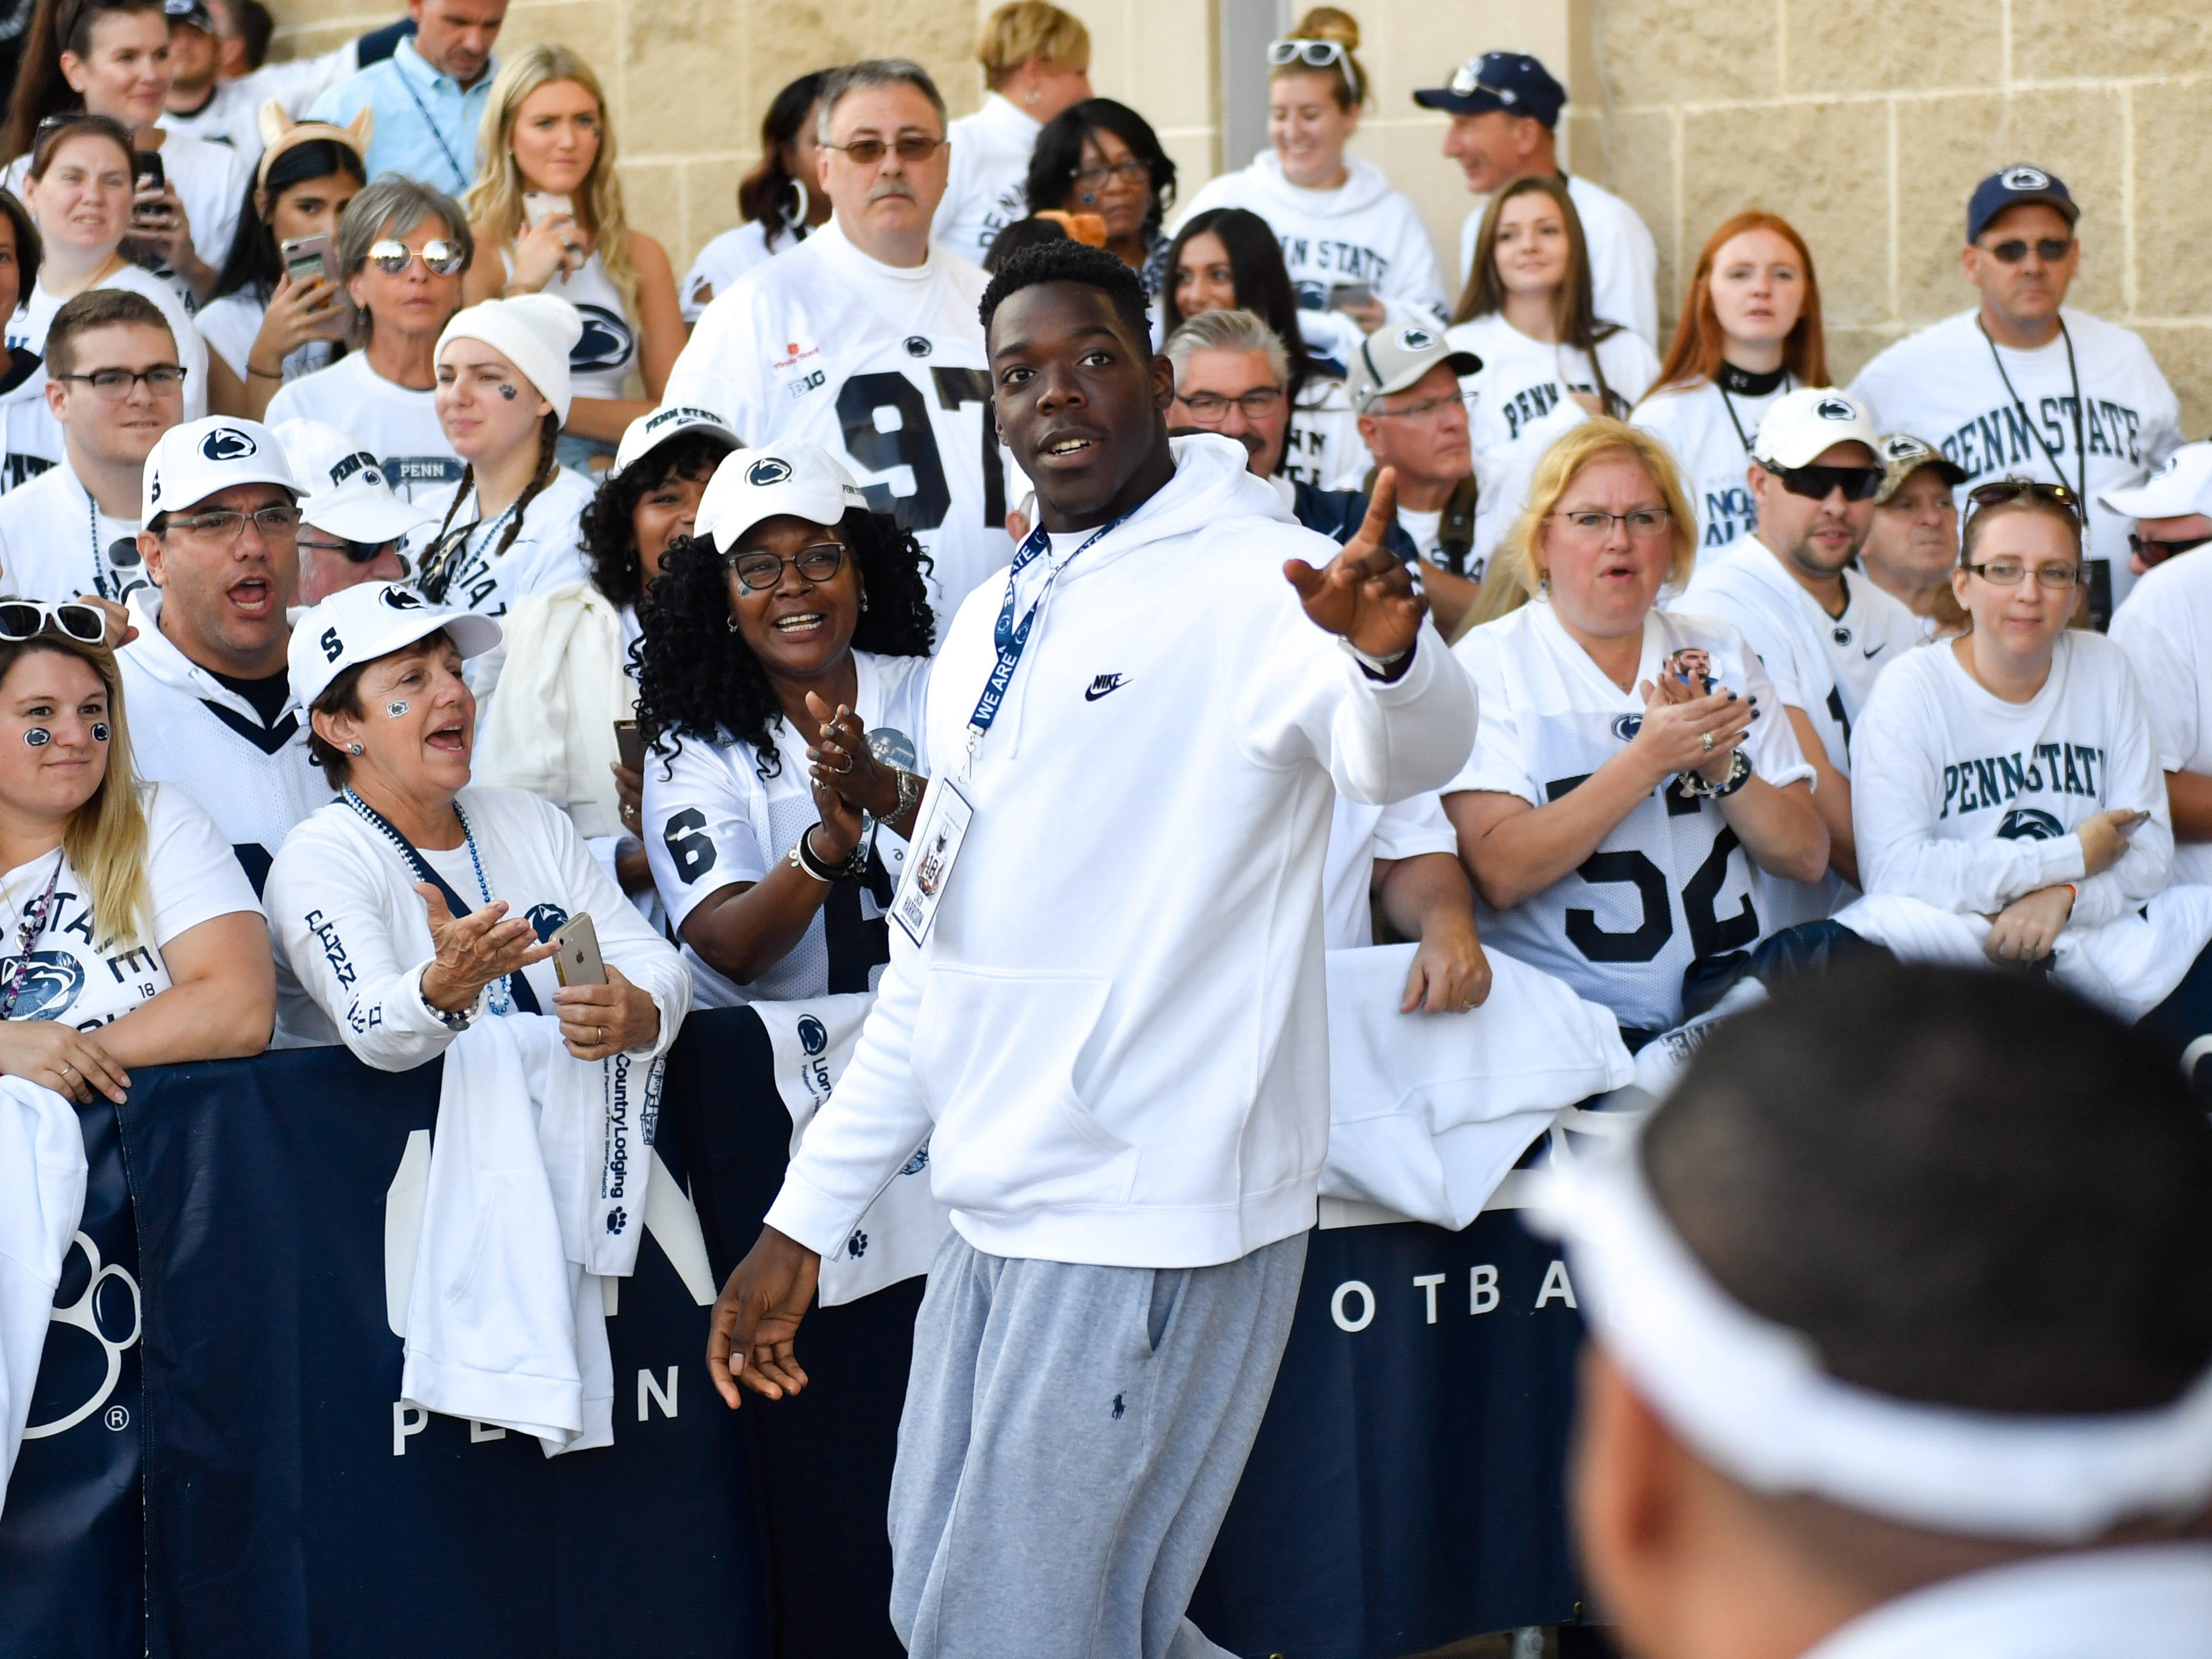 Penn State recruit Zach Harrison waves to the crowd before the team arrives for their game against the Ohio State University, Saturday, September 29, 2018.